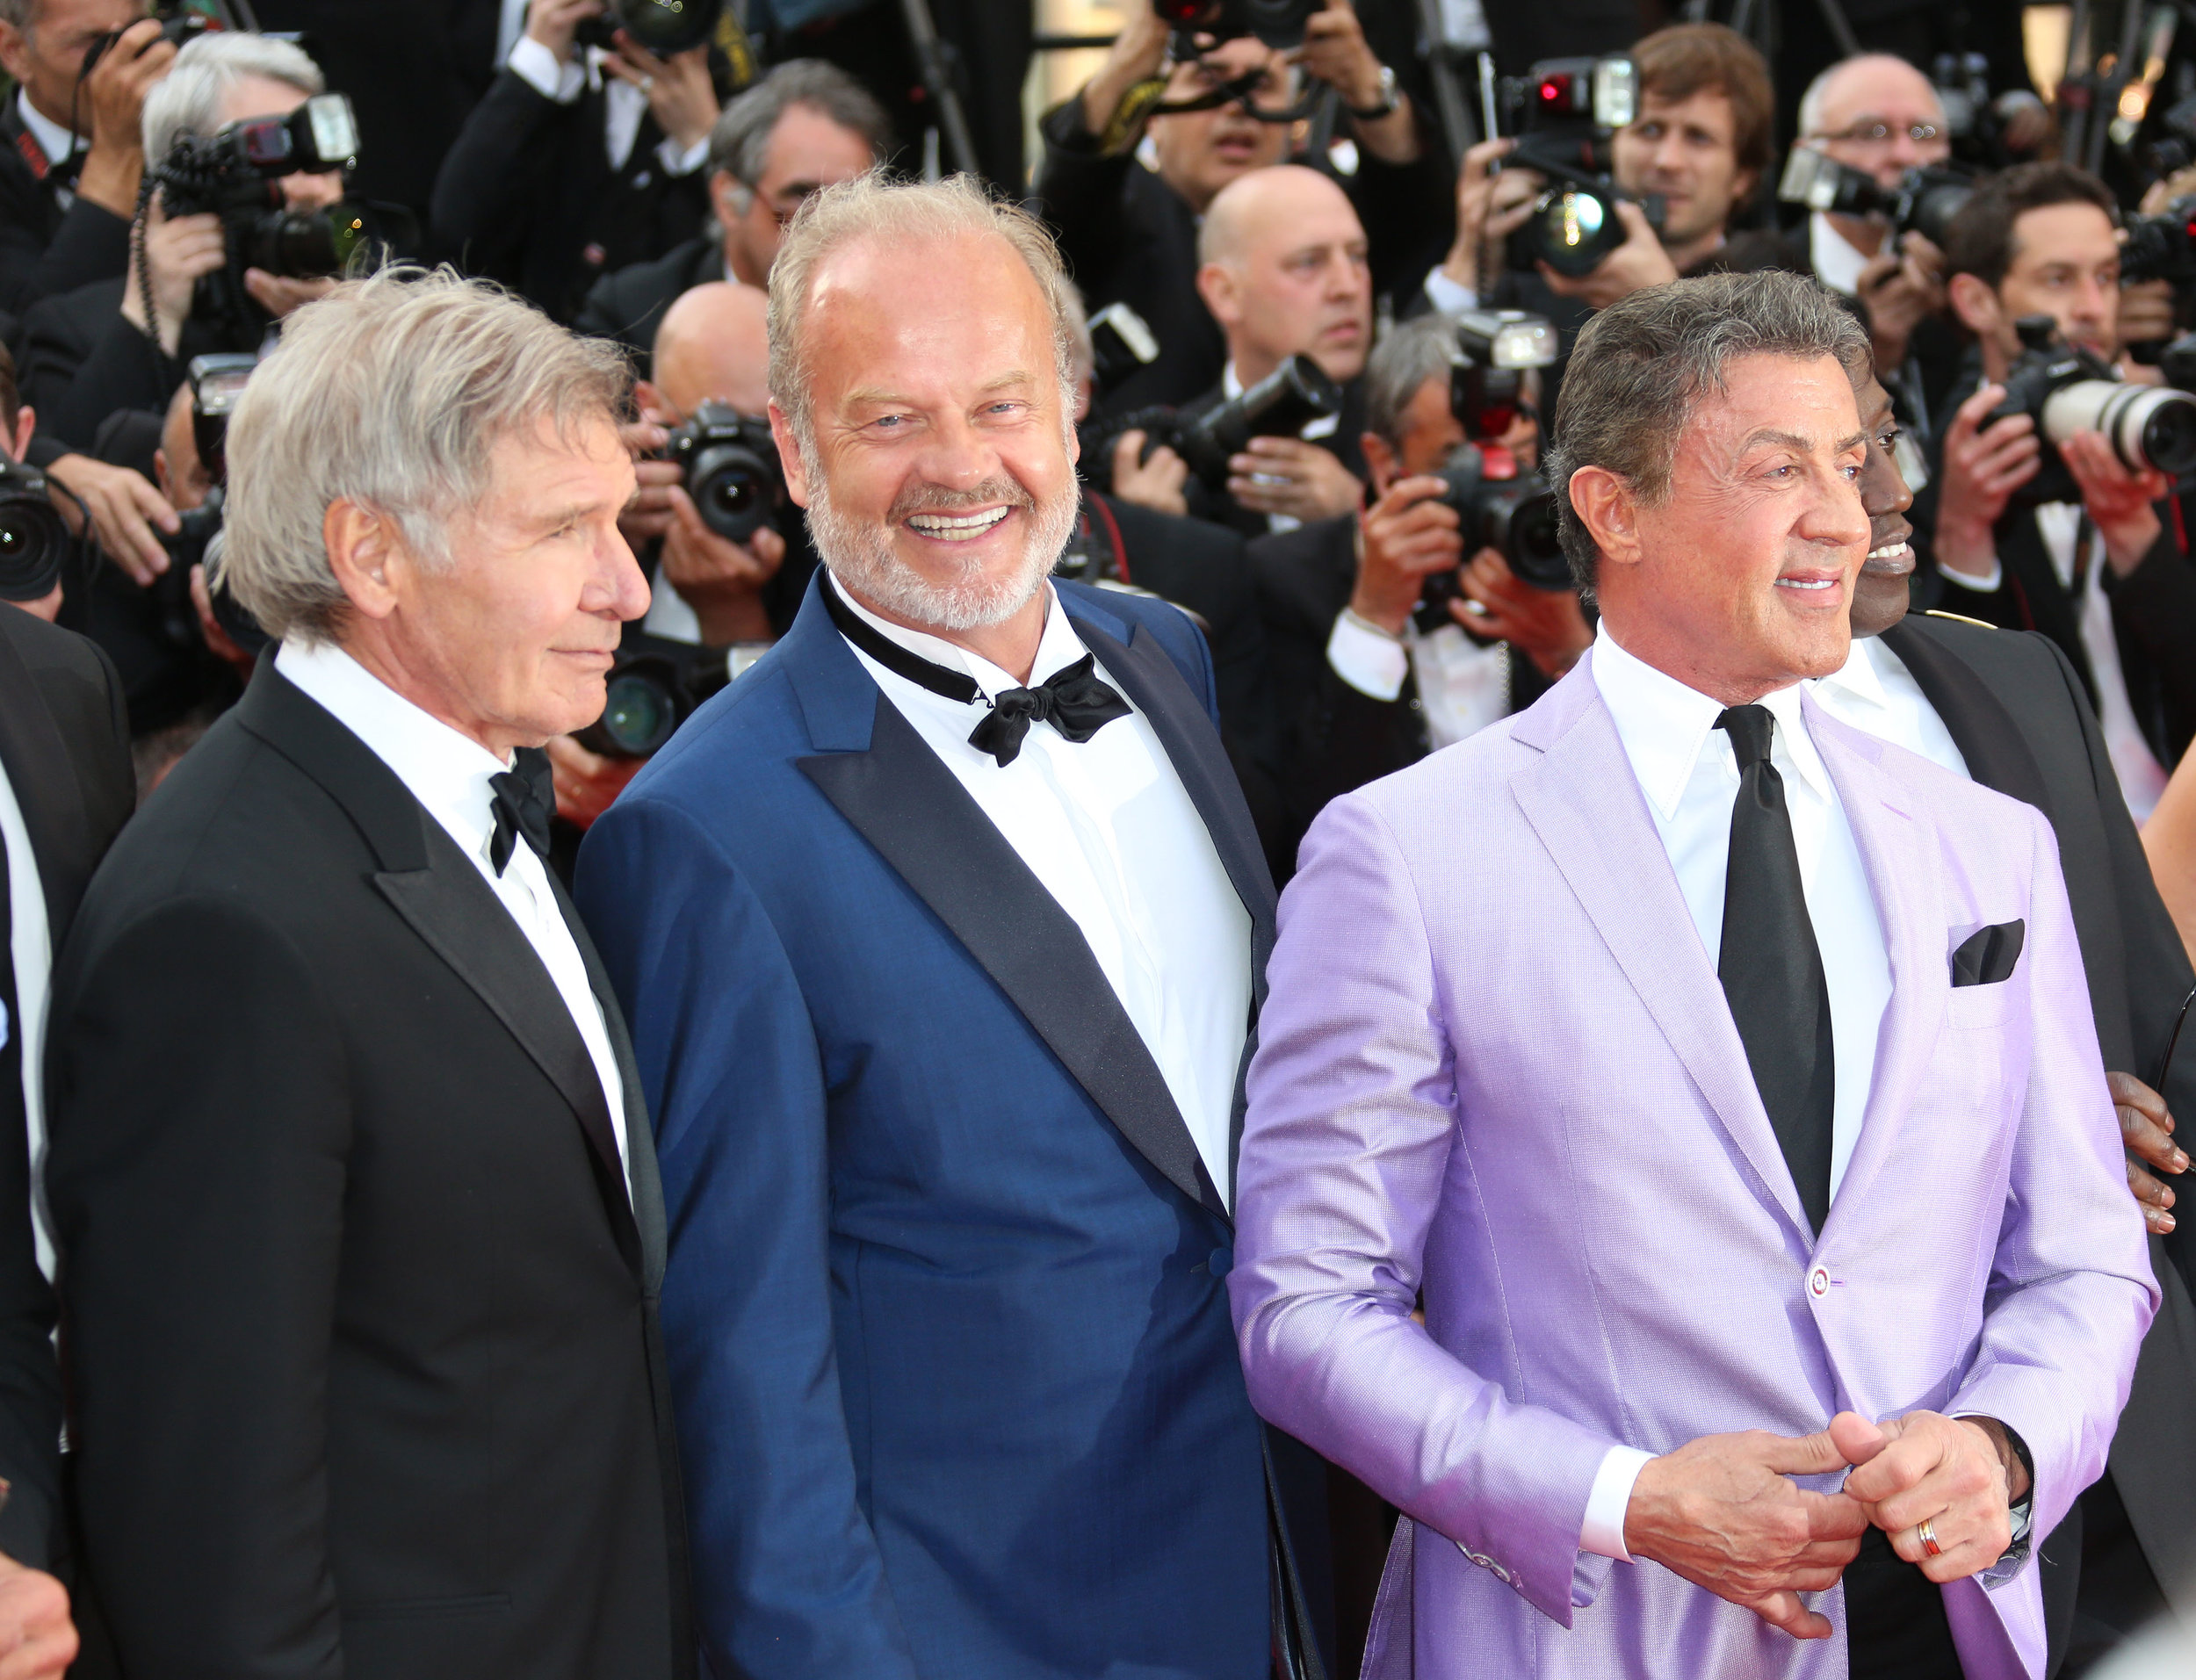 kelsey-grammer-dressed-in-francesco-smalto.jpg